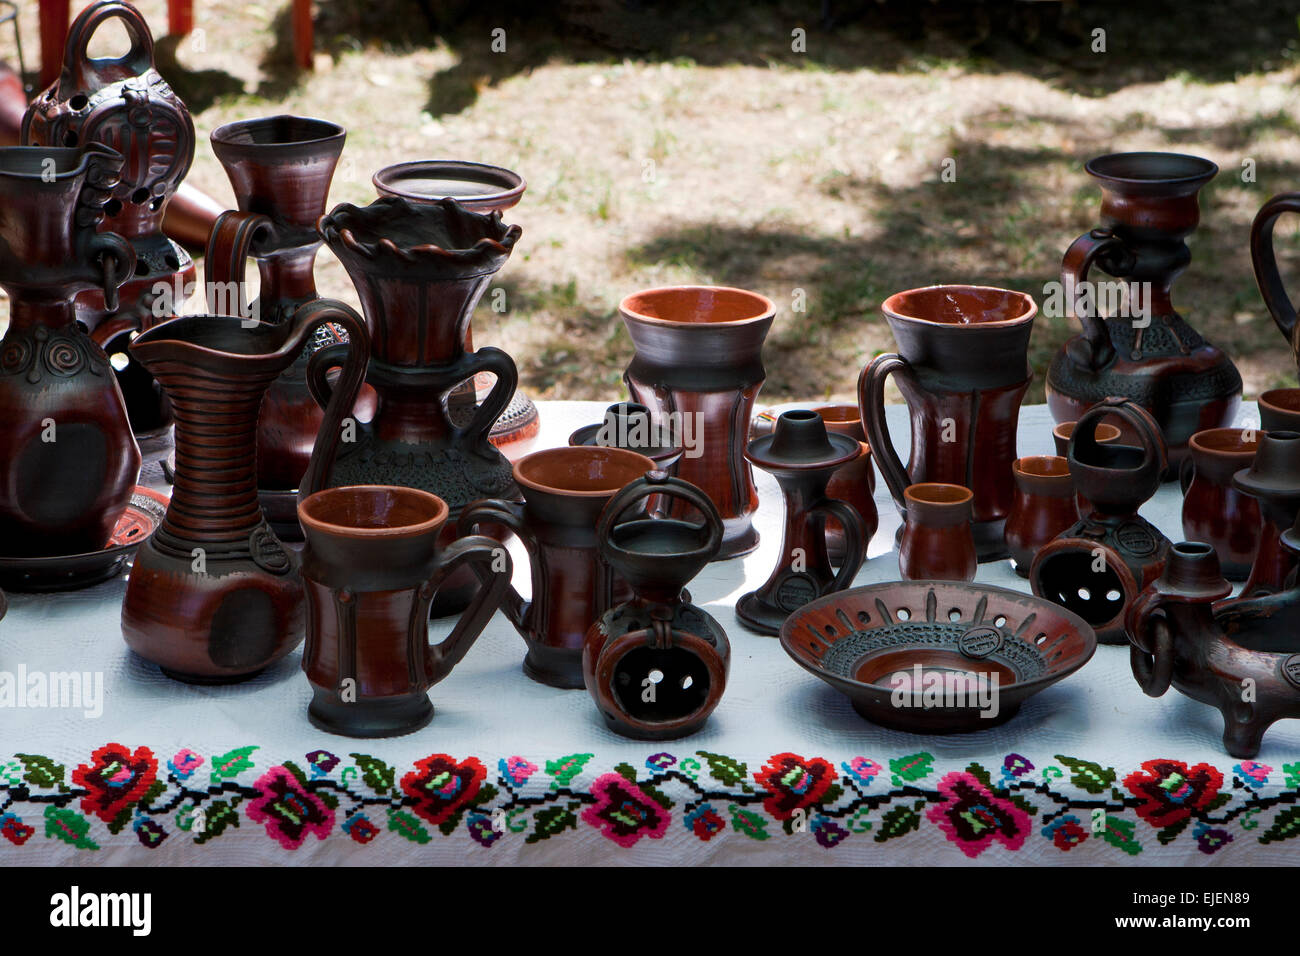 Handmade pottery at an exhibition of traditional products - Stock Image